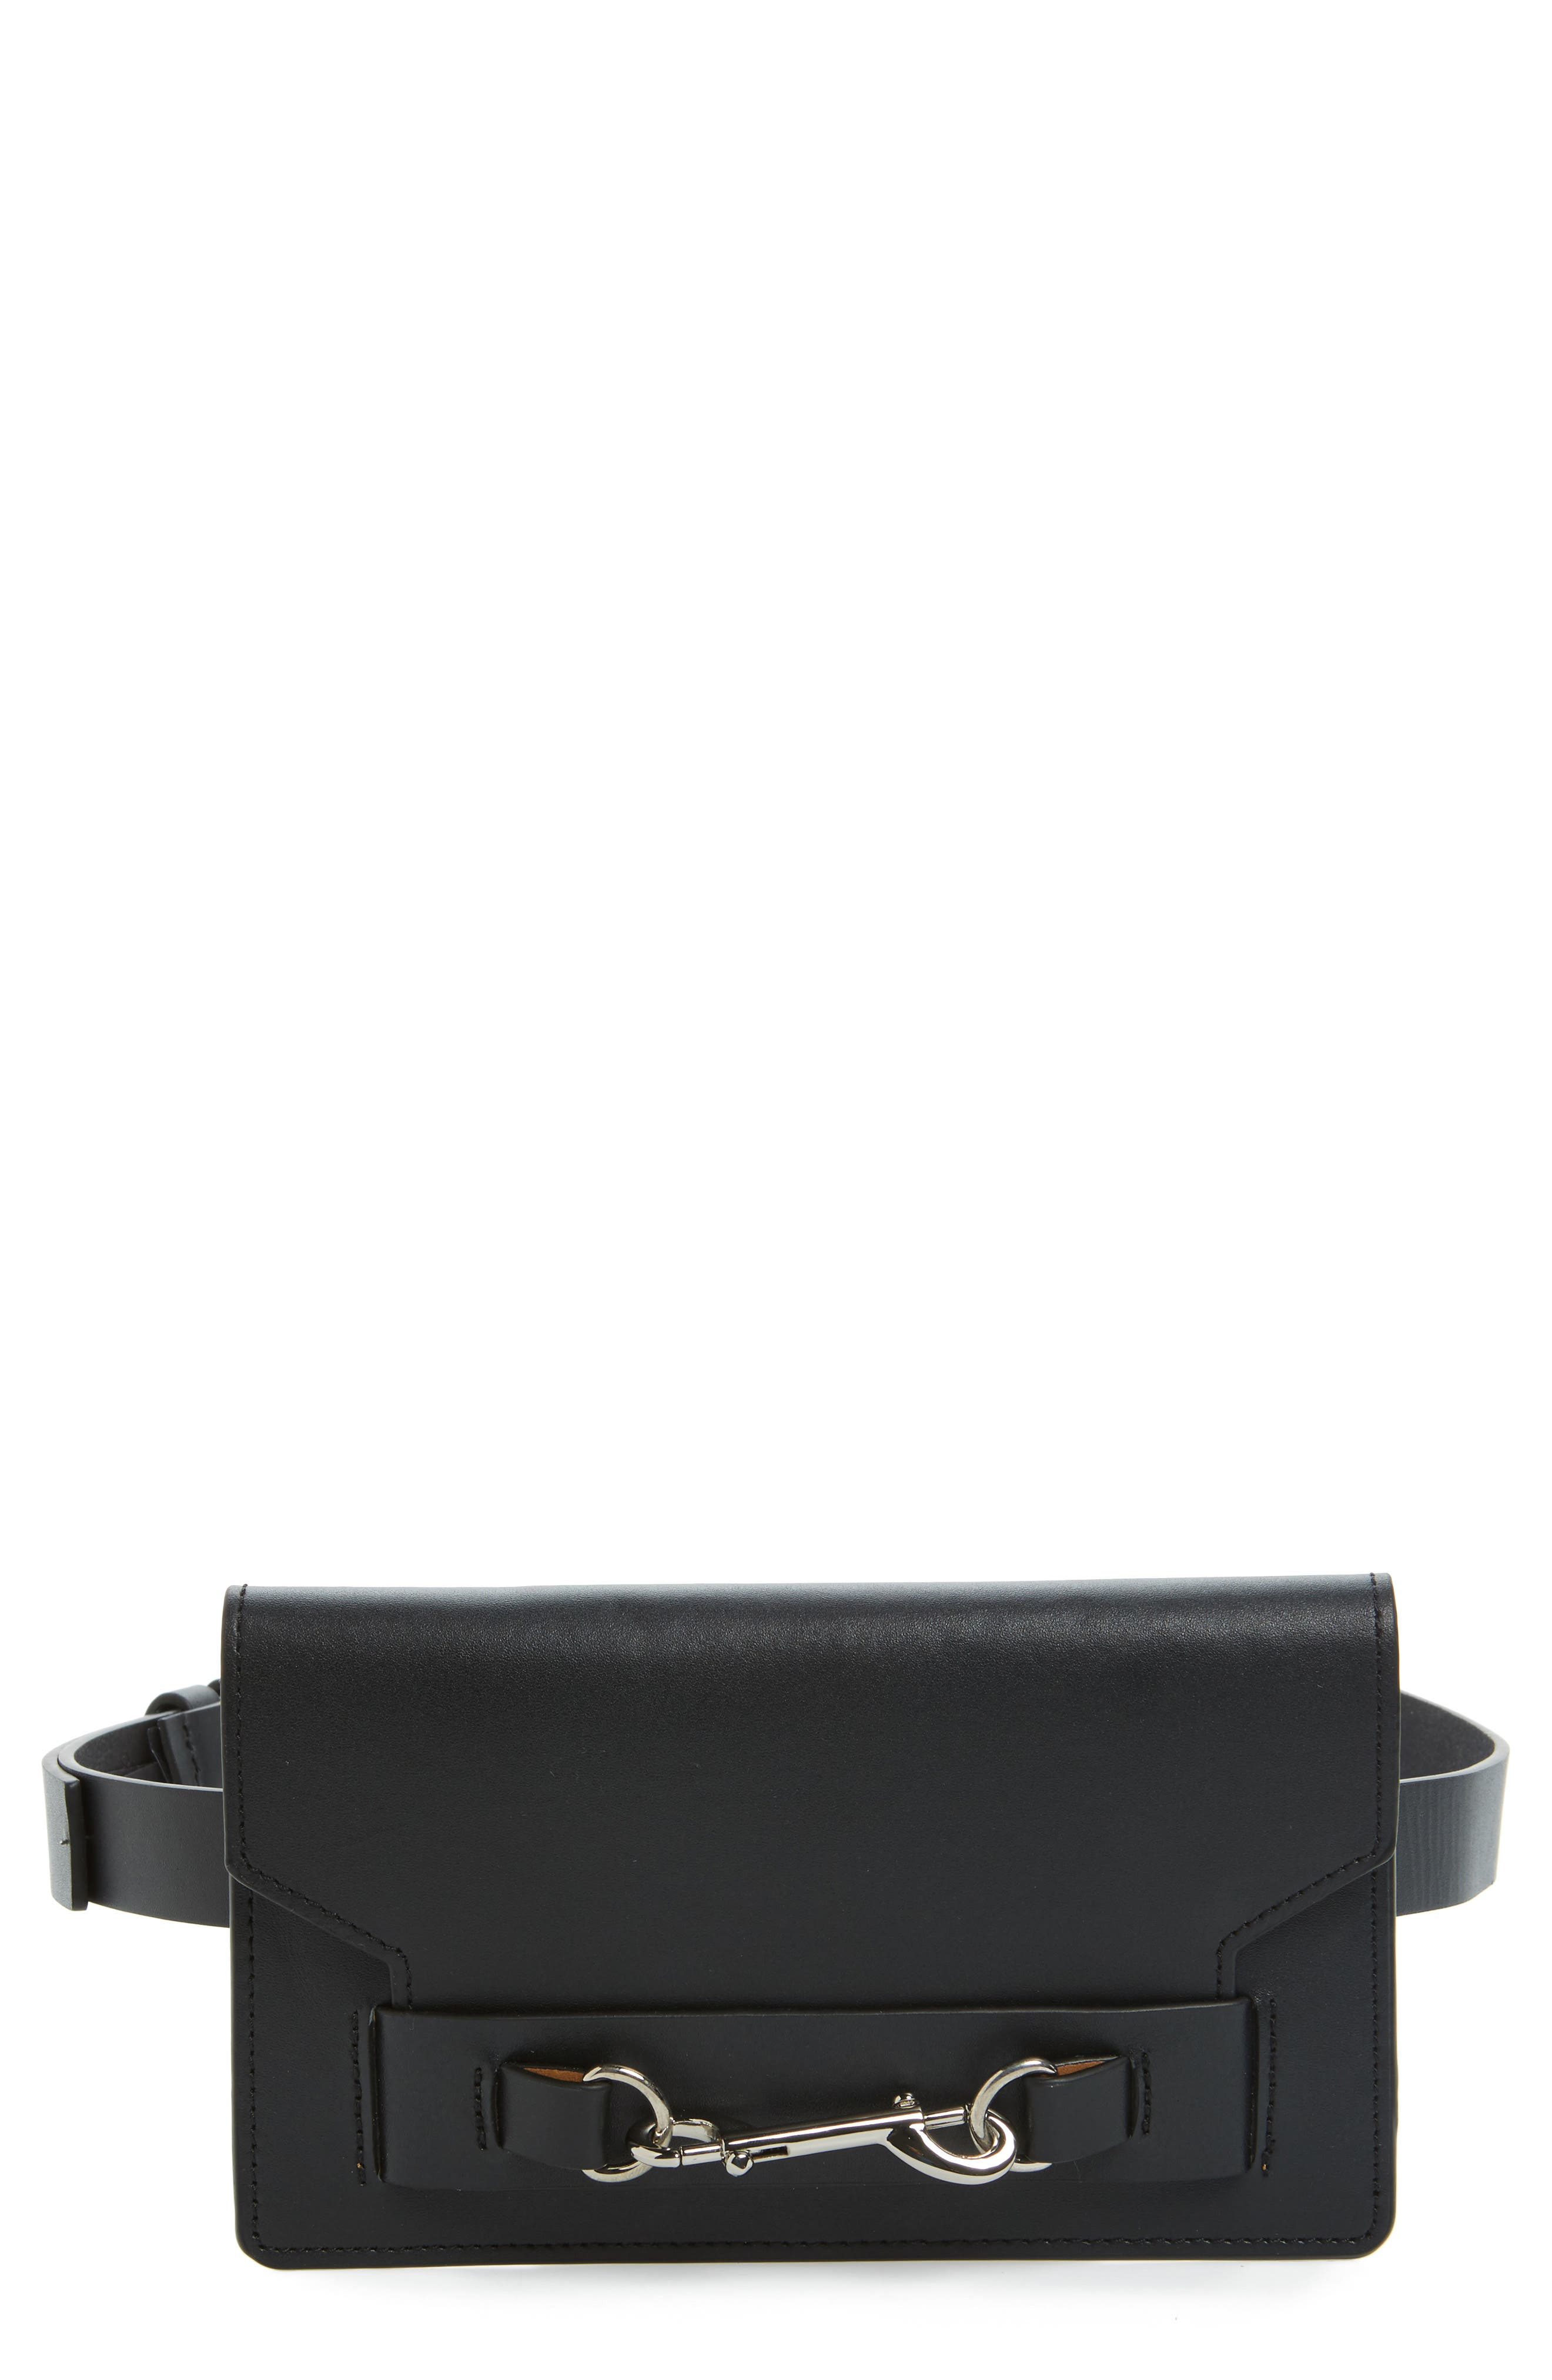 Belt Bag,                             Main thumbnail 1, color,                             001